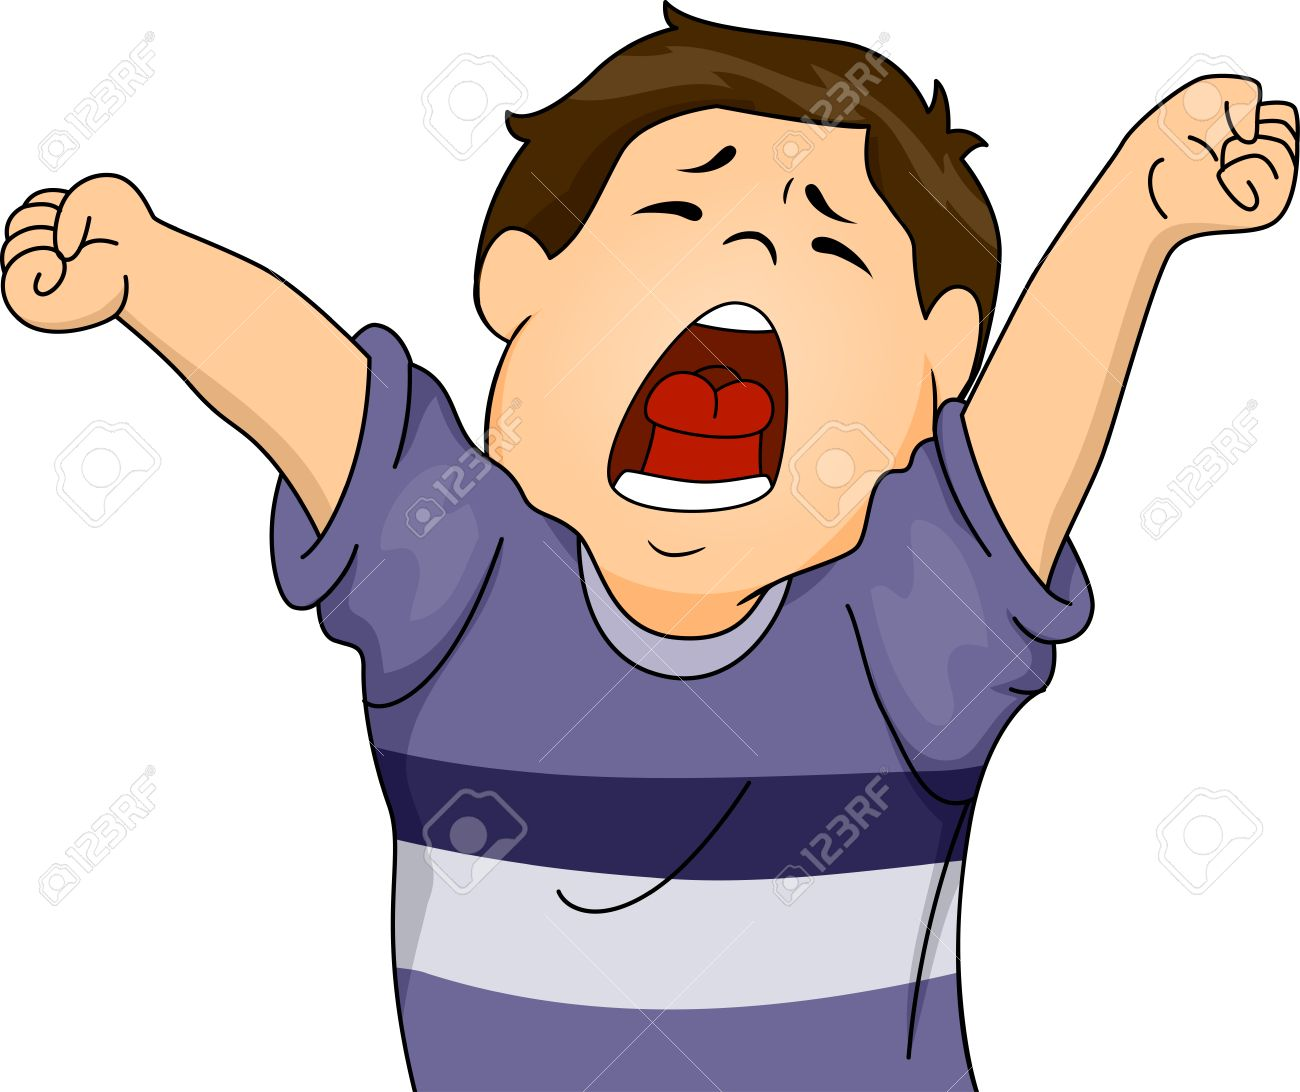 illustration featuring a boy letting out a big yawn while stretching rh 123rf com yawning clipart gif yawn clipart